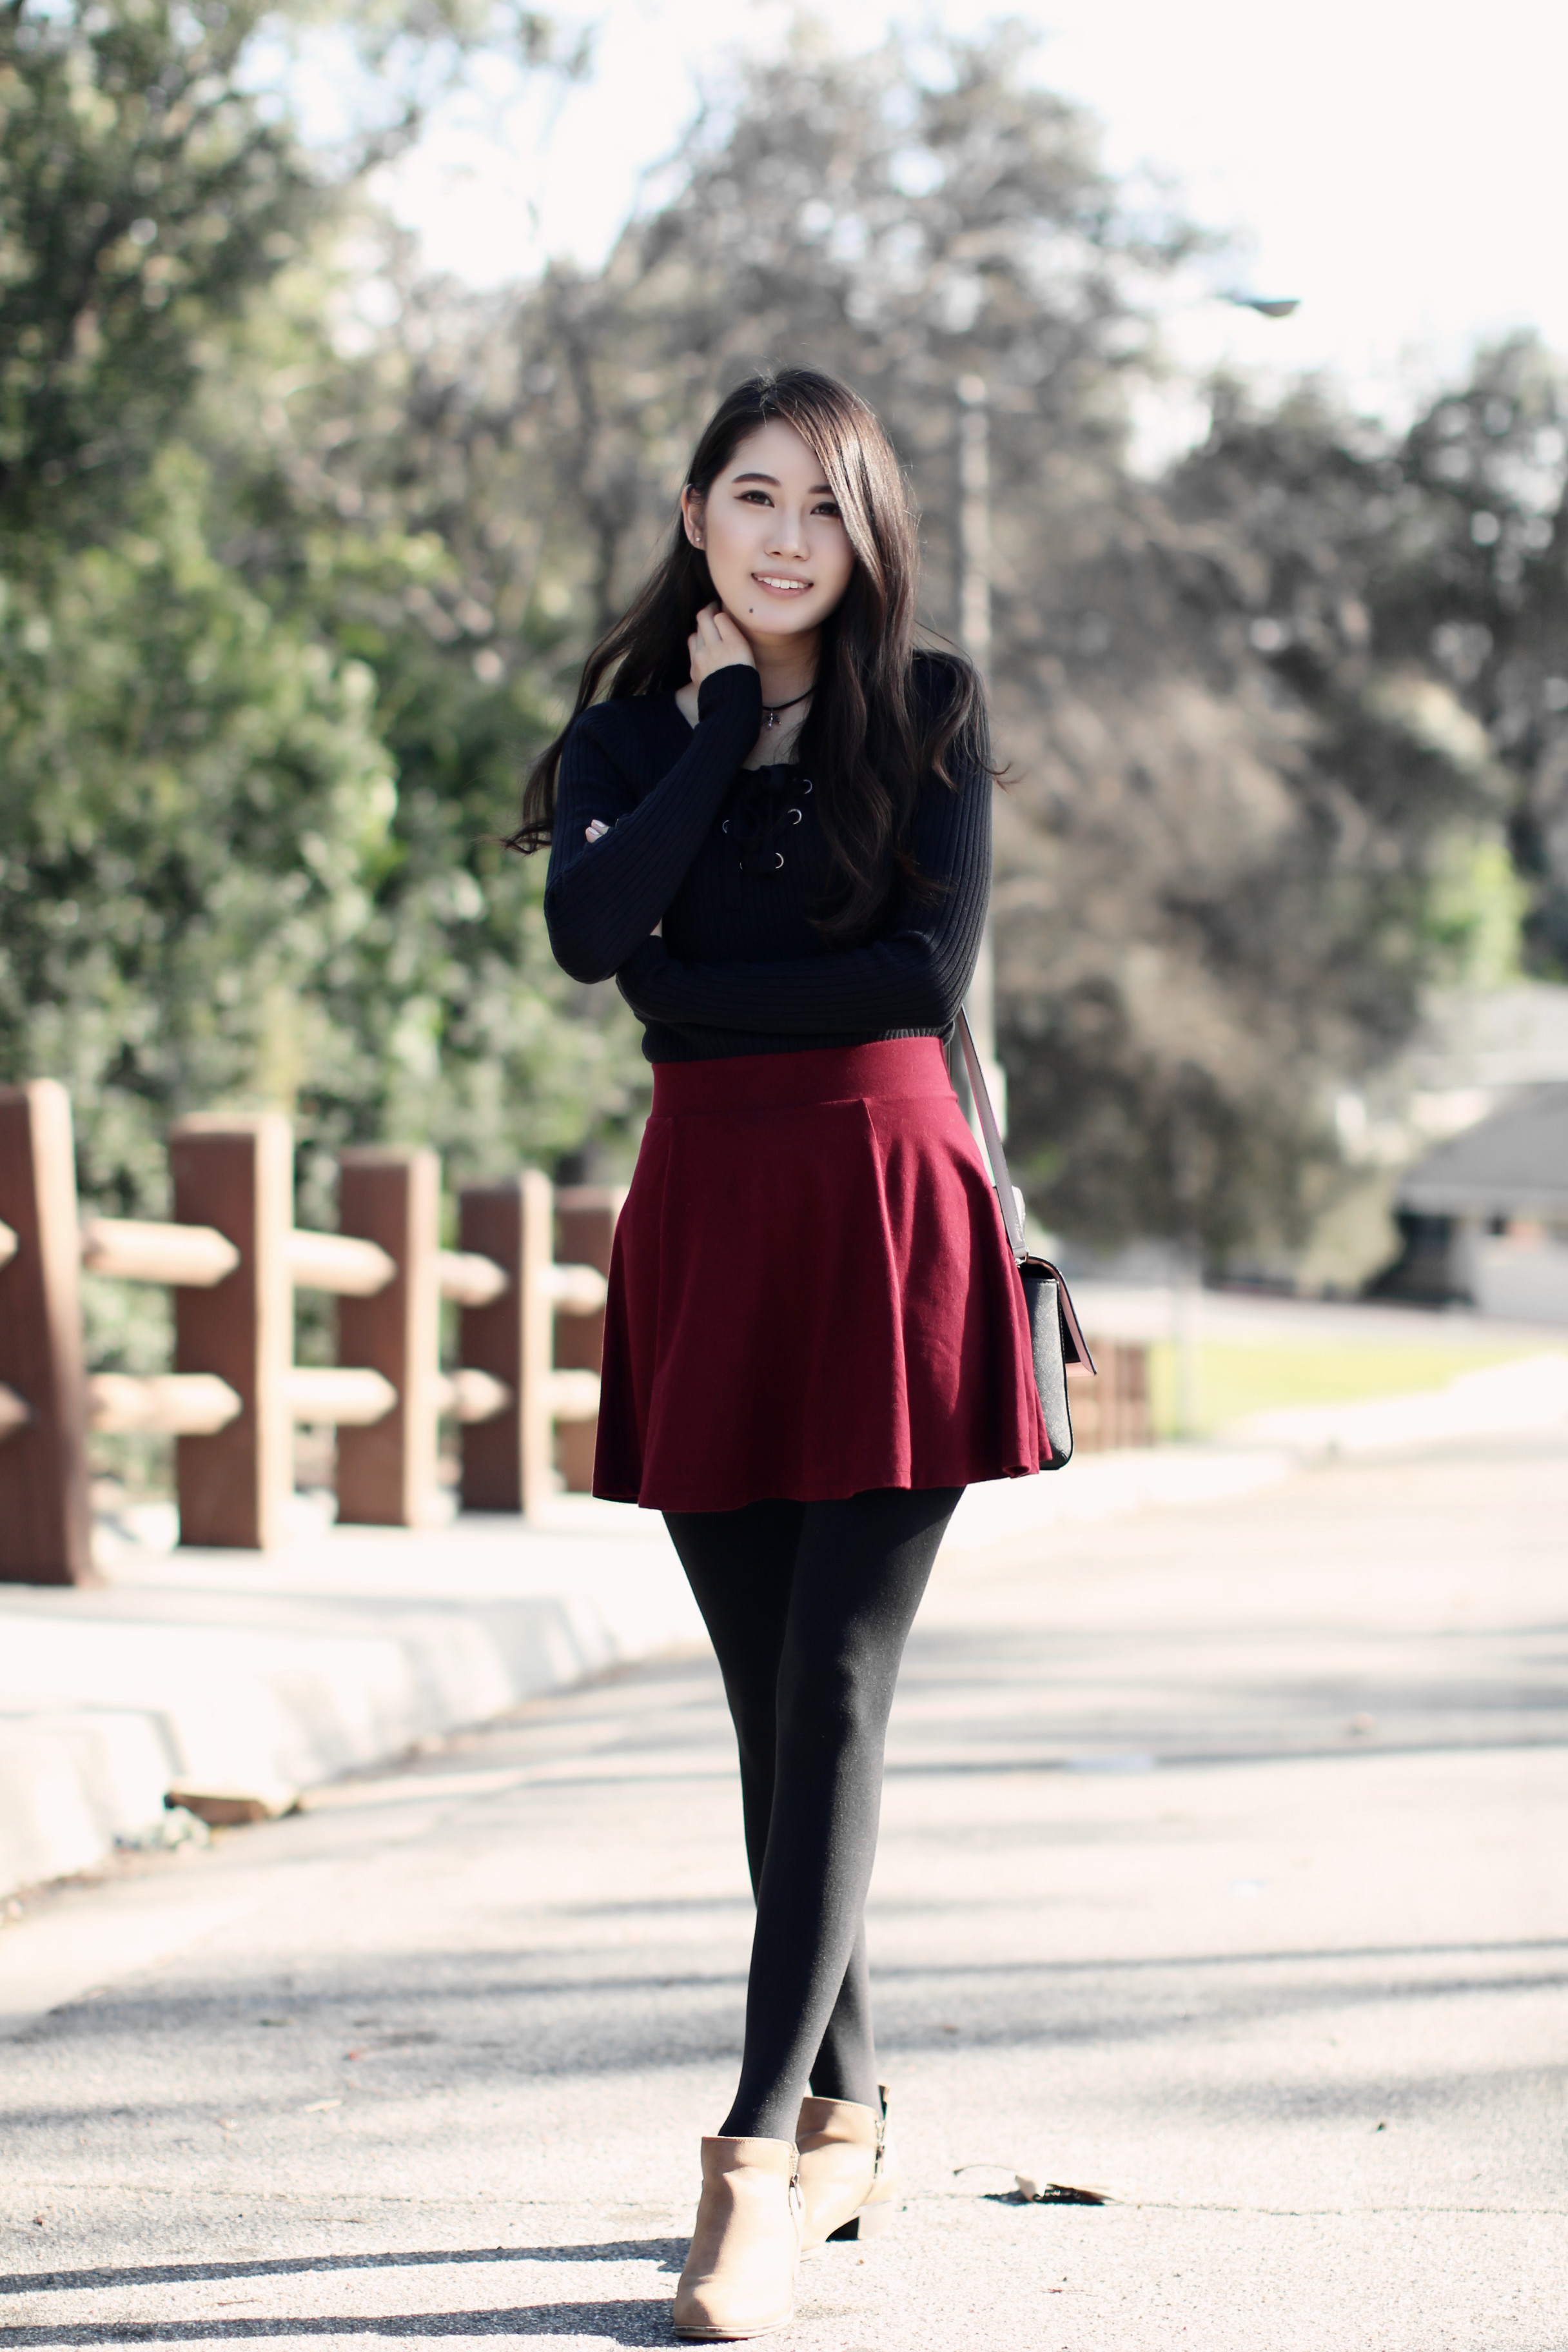 2378-ootd-fashion-style-wiwt-clothestoyouuu-elizabeeetht-preppy-f21-hollister-winterfashion-springfashion